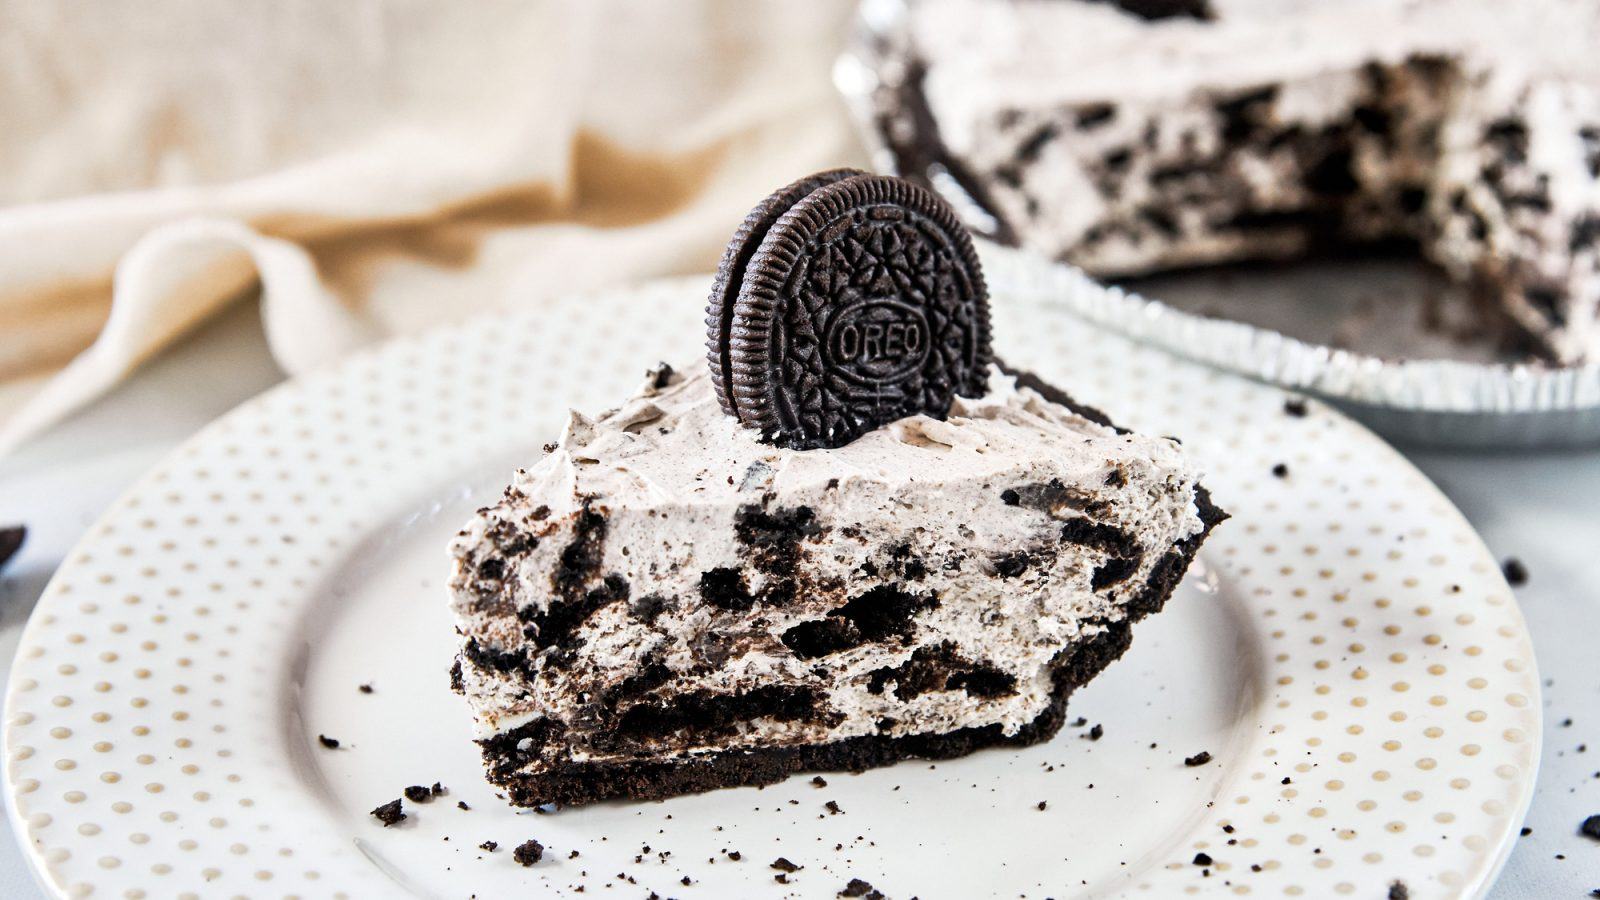 vegan Oreo cheesecake on a plate with cake in the background